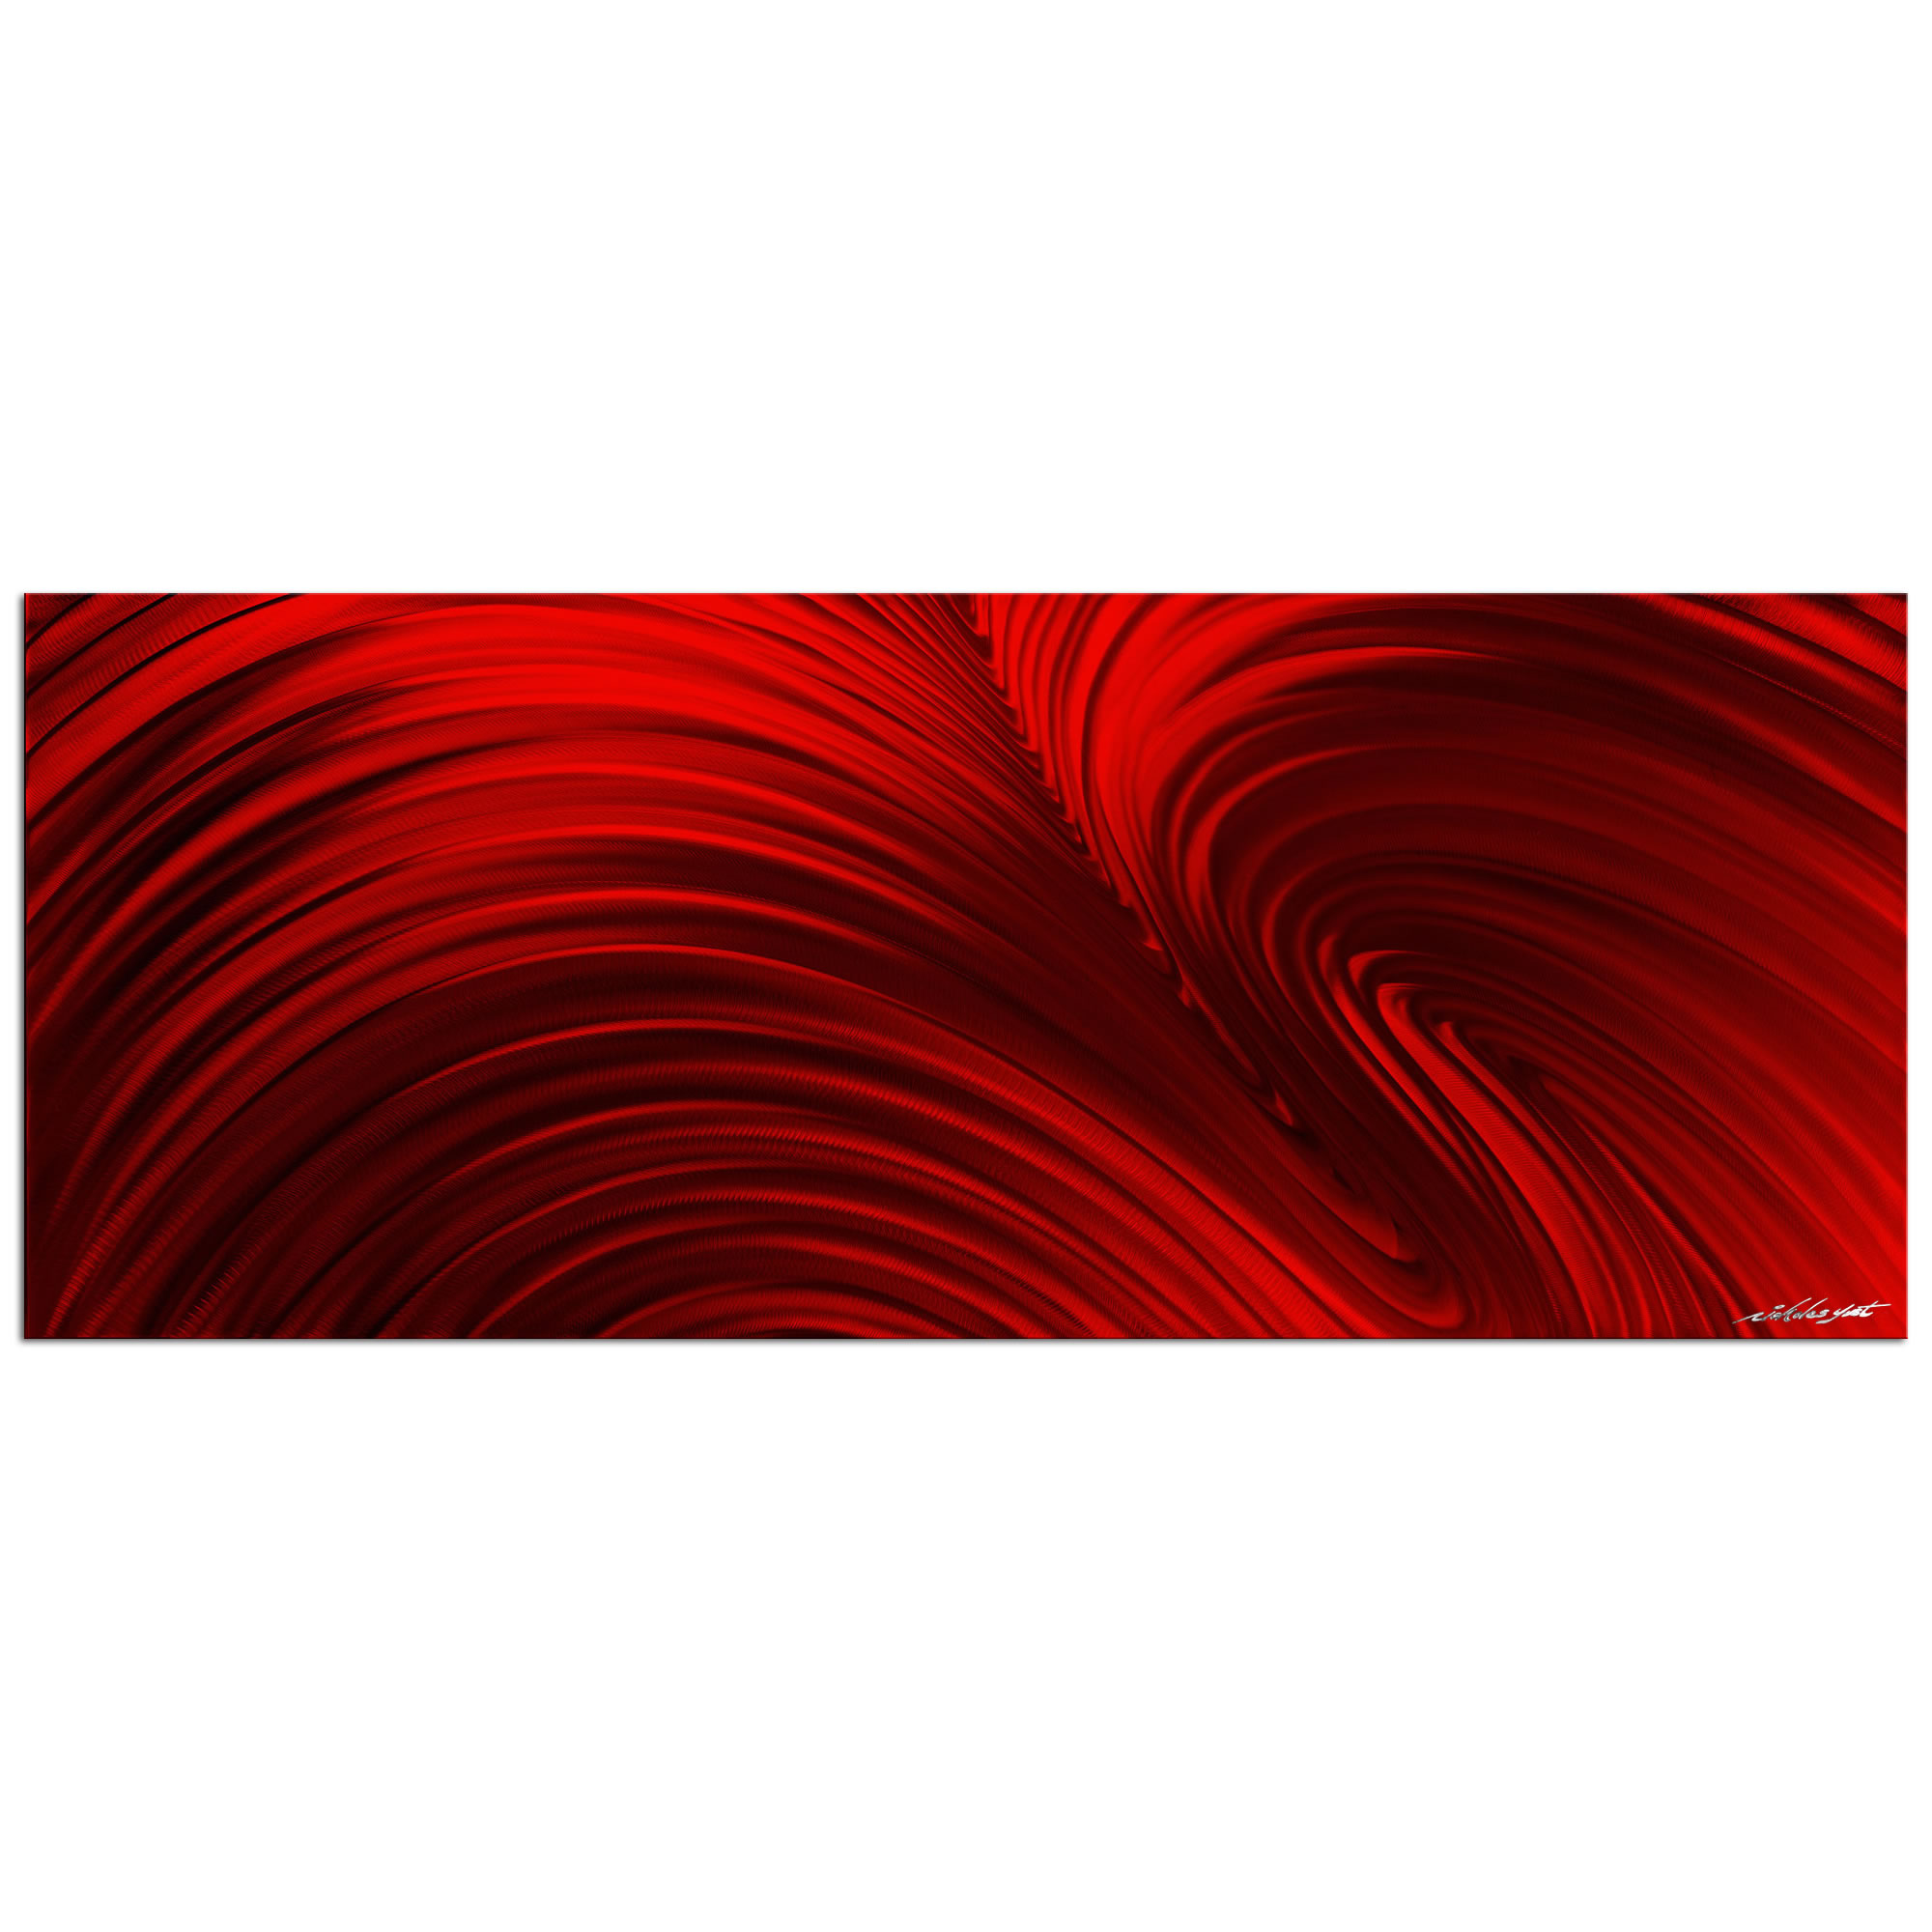 Fusion Red - Contemporary Metal Wall Art